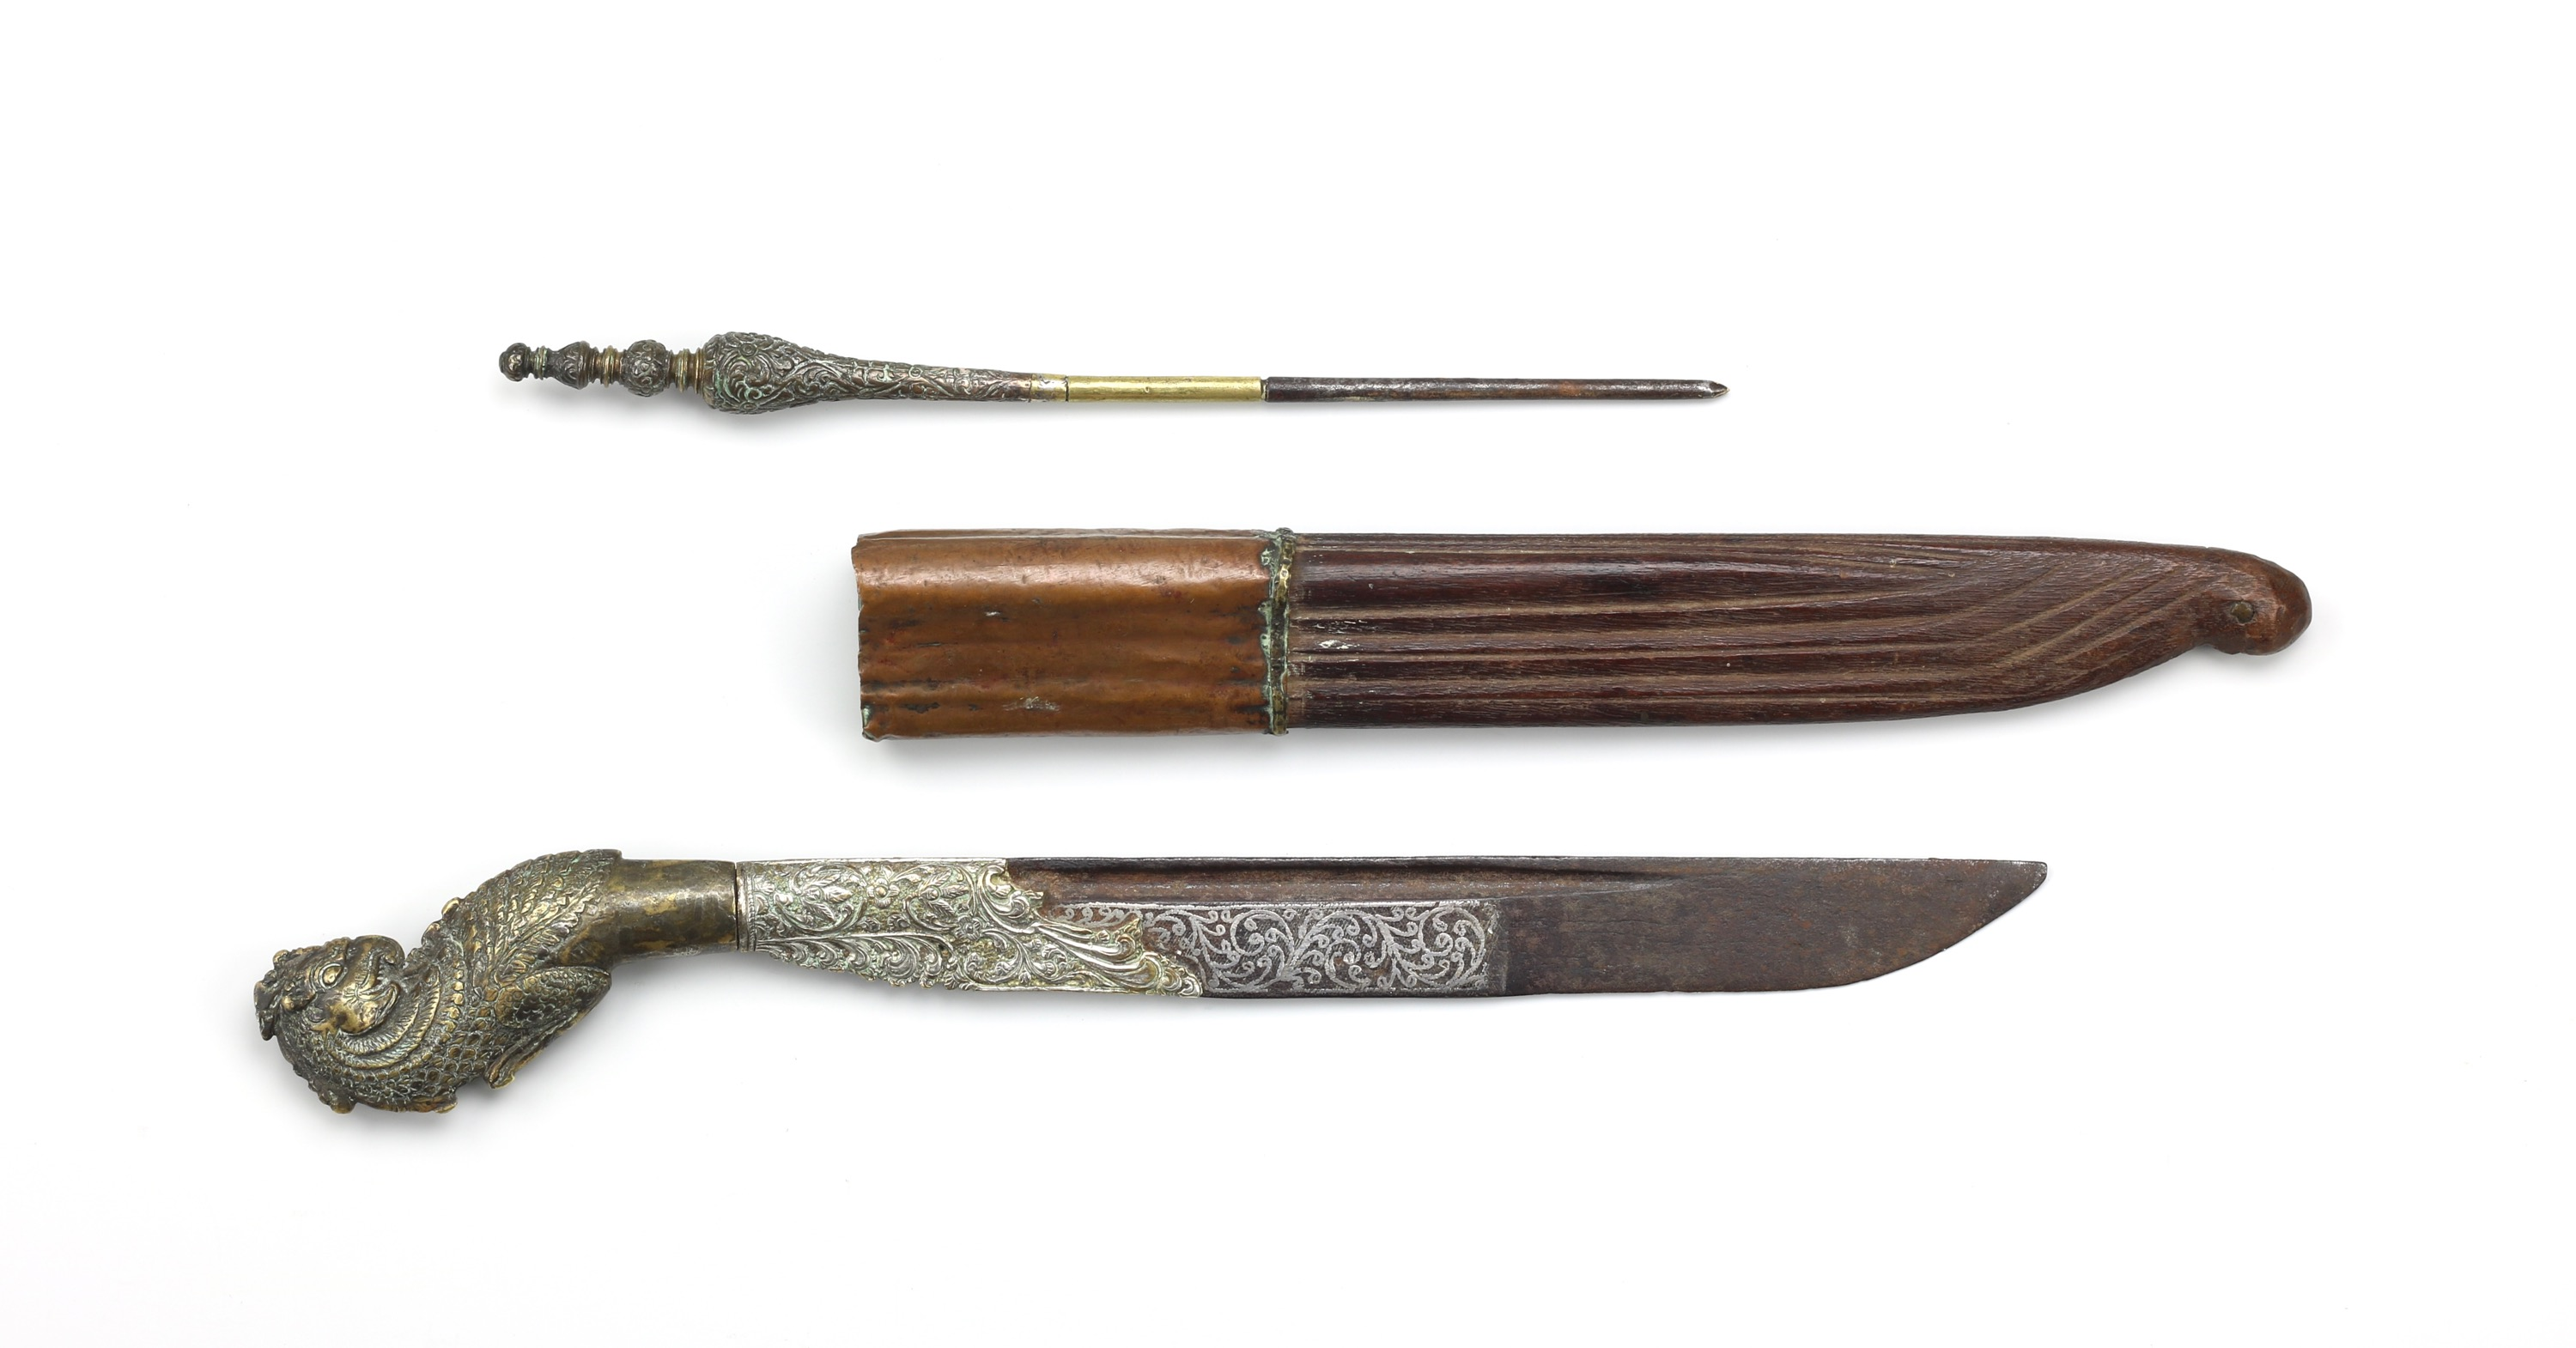 Sinhalese knife with stylus